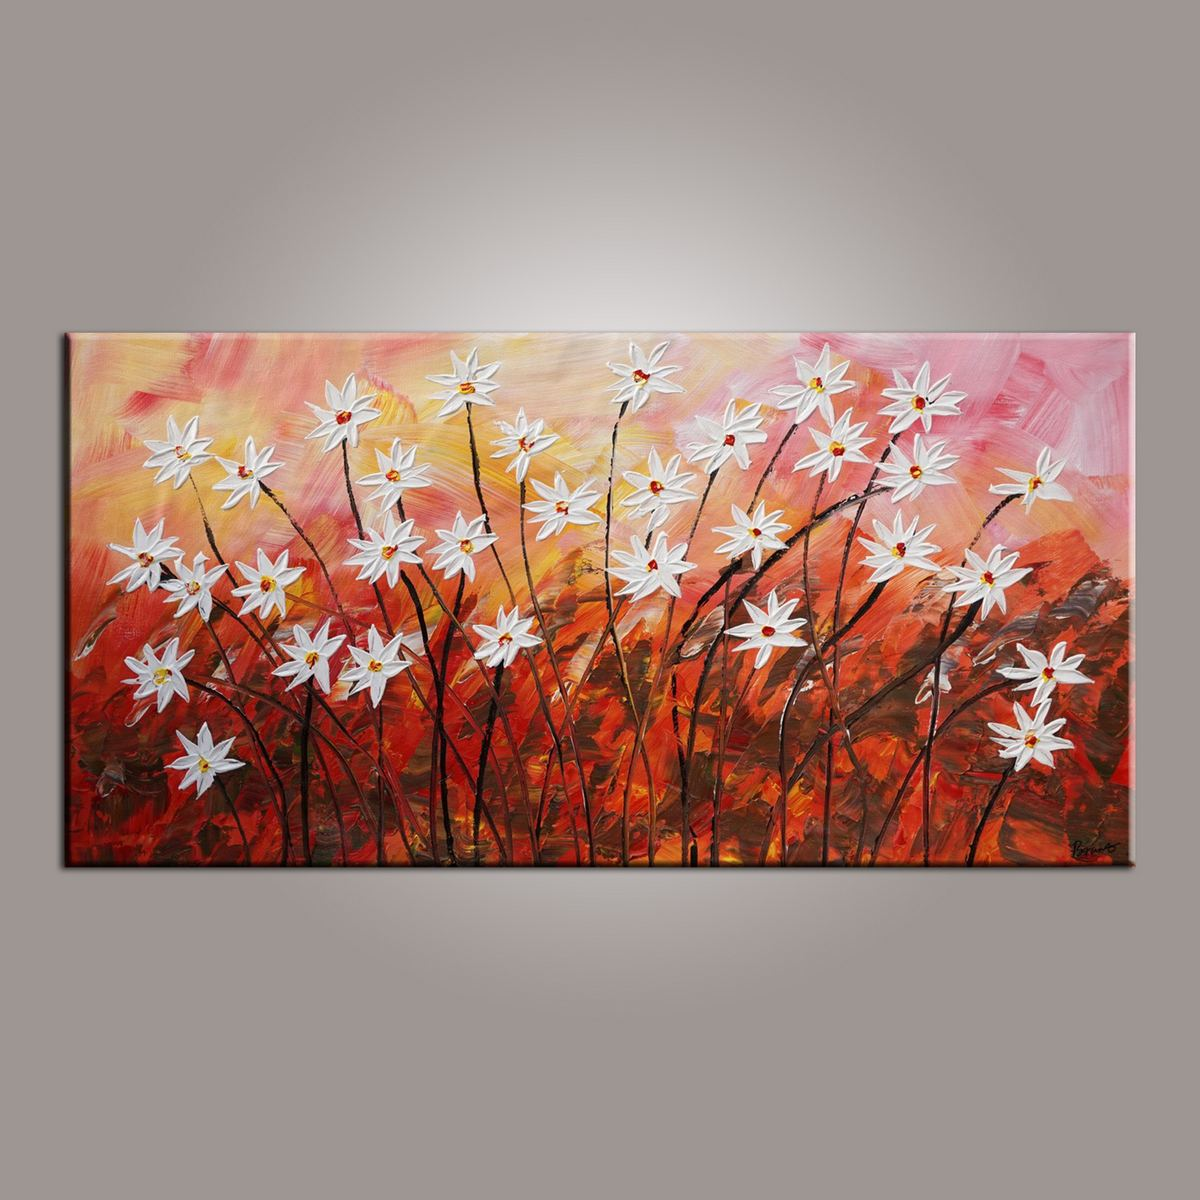 Wall Painting, Canvas Wall Art, Flower Art, Abstract Art Painting, Acrylic Painting, Bedroom Wall Art, Canvas Art, Modern Art, Contemporary Art